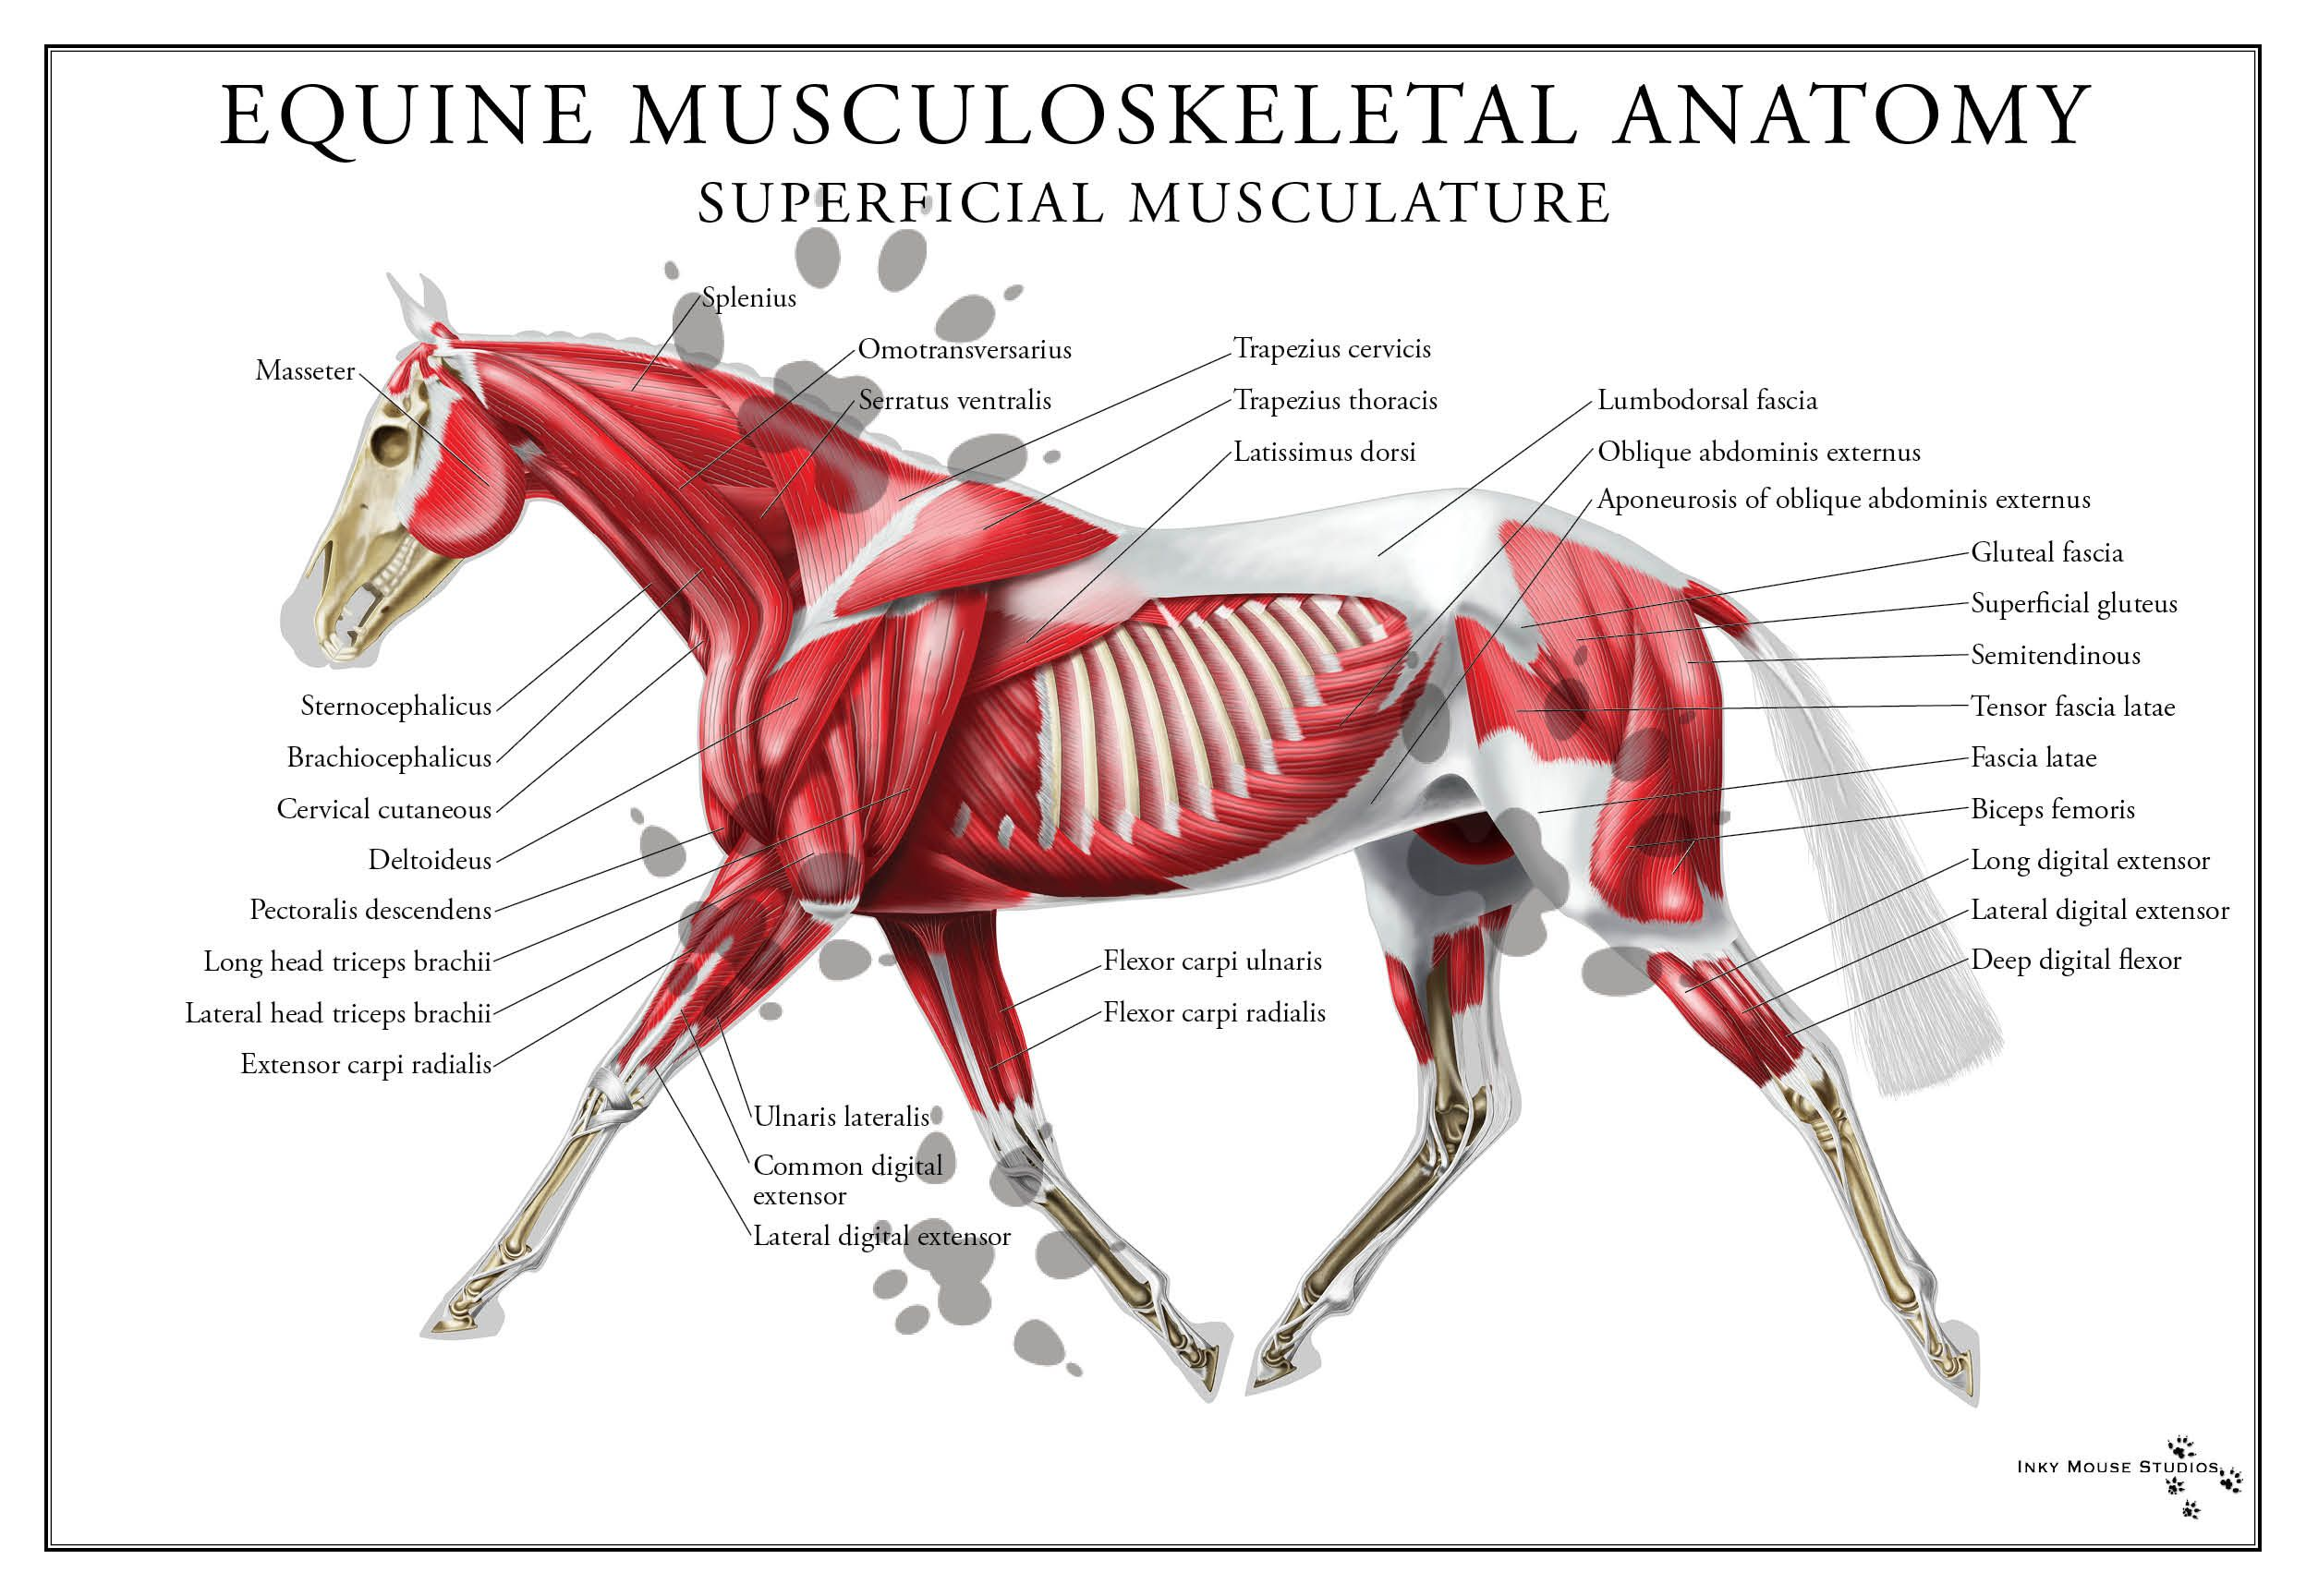 Equine Superficial Muscular System Poster